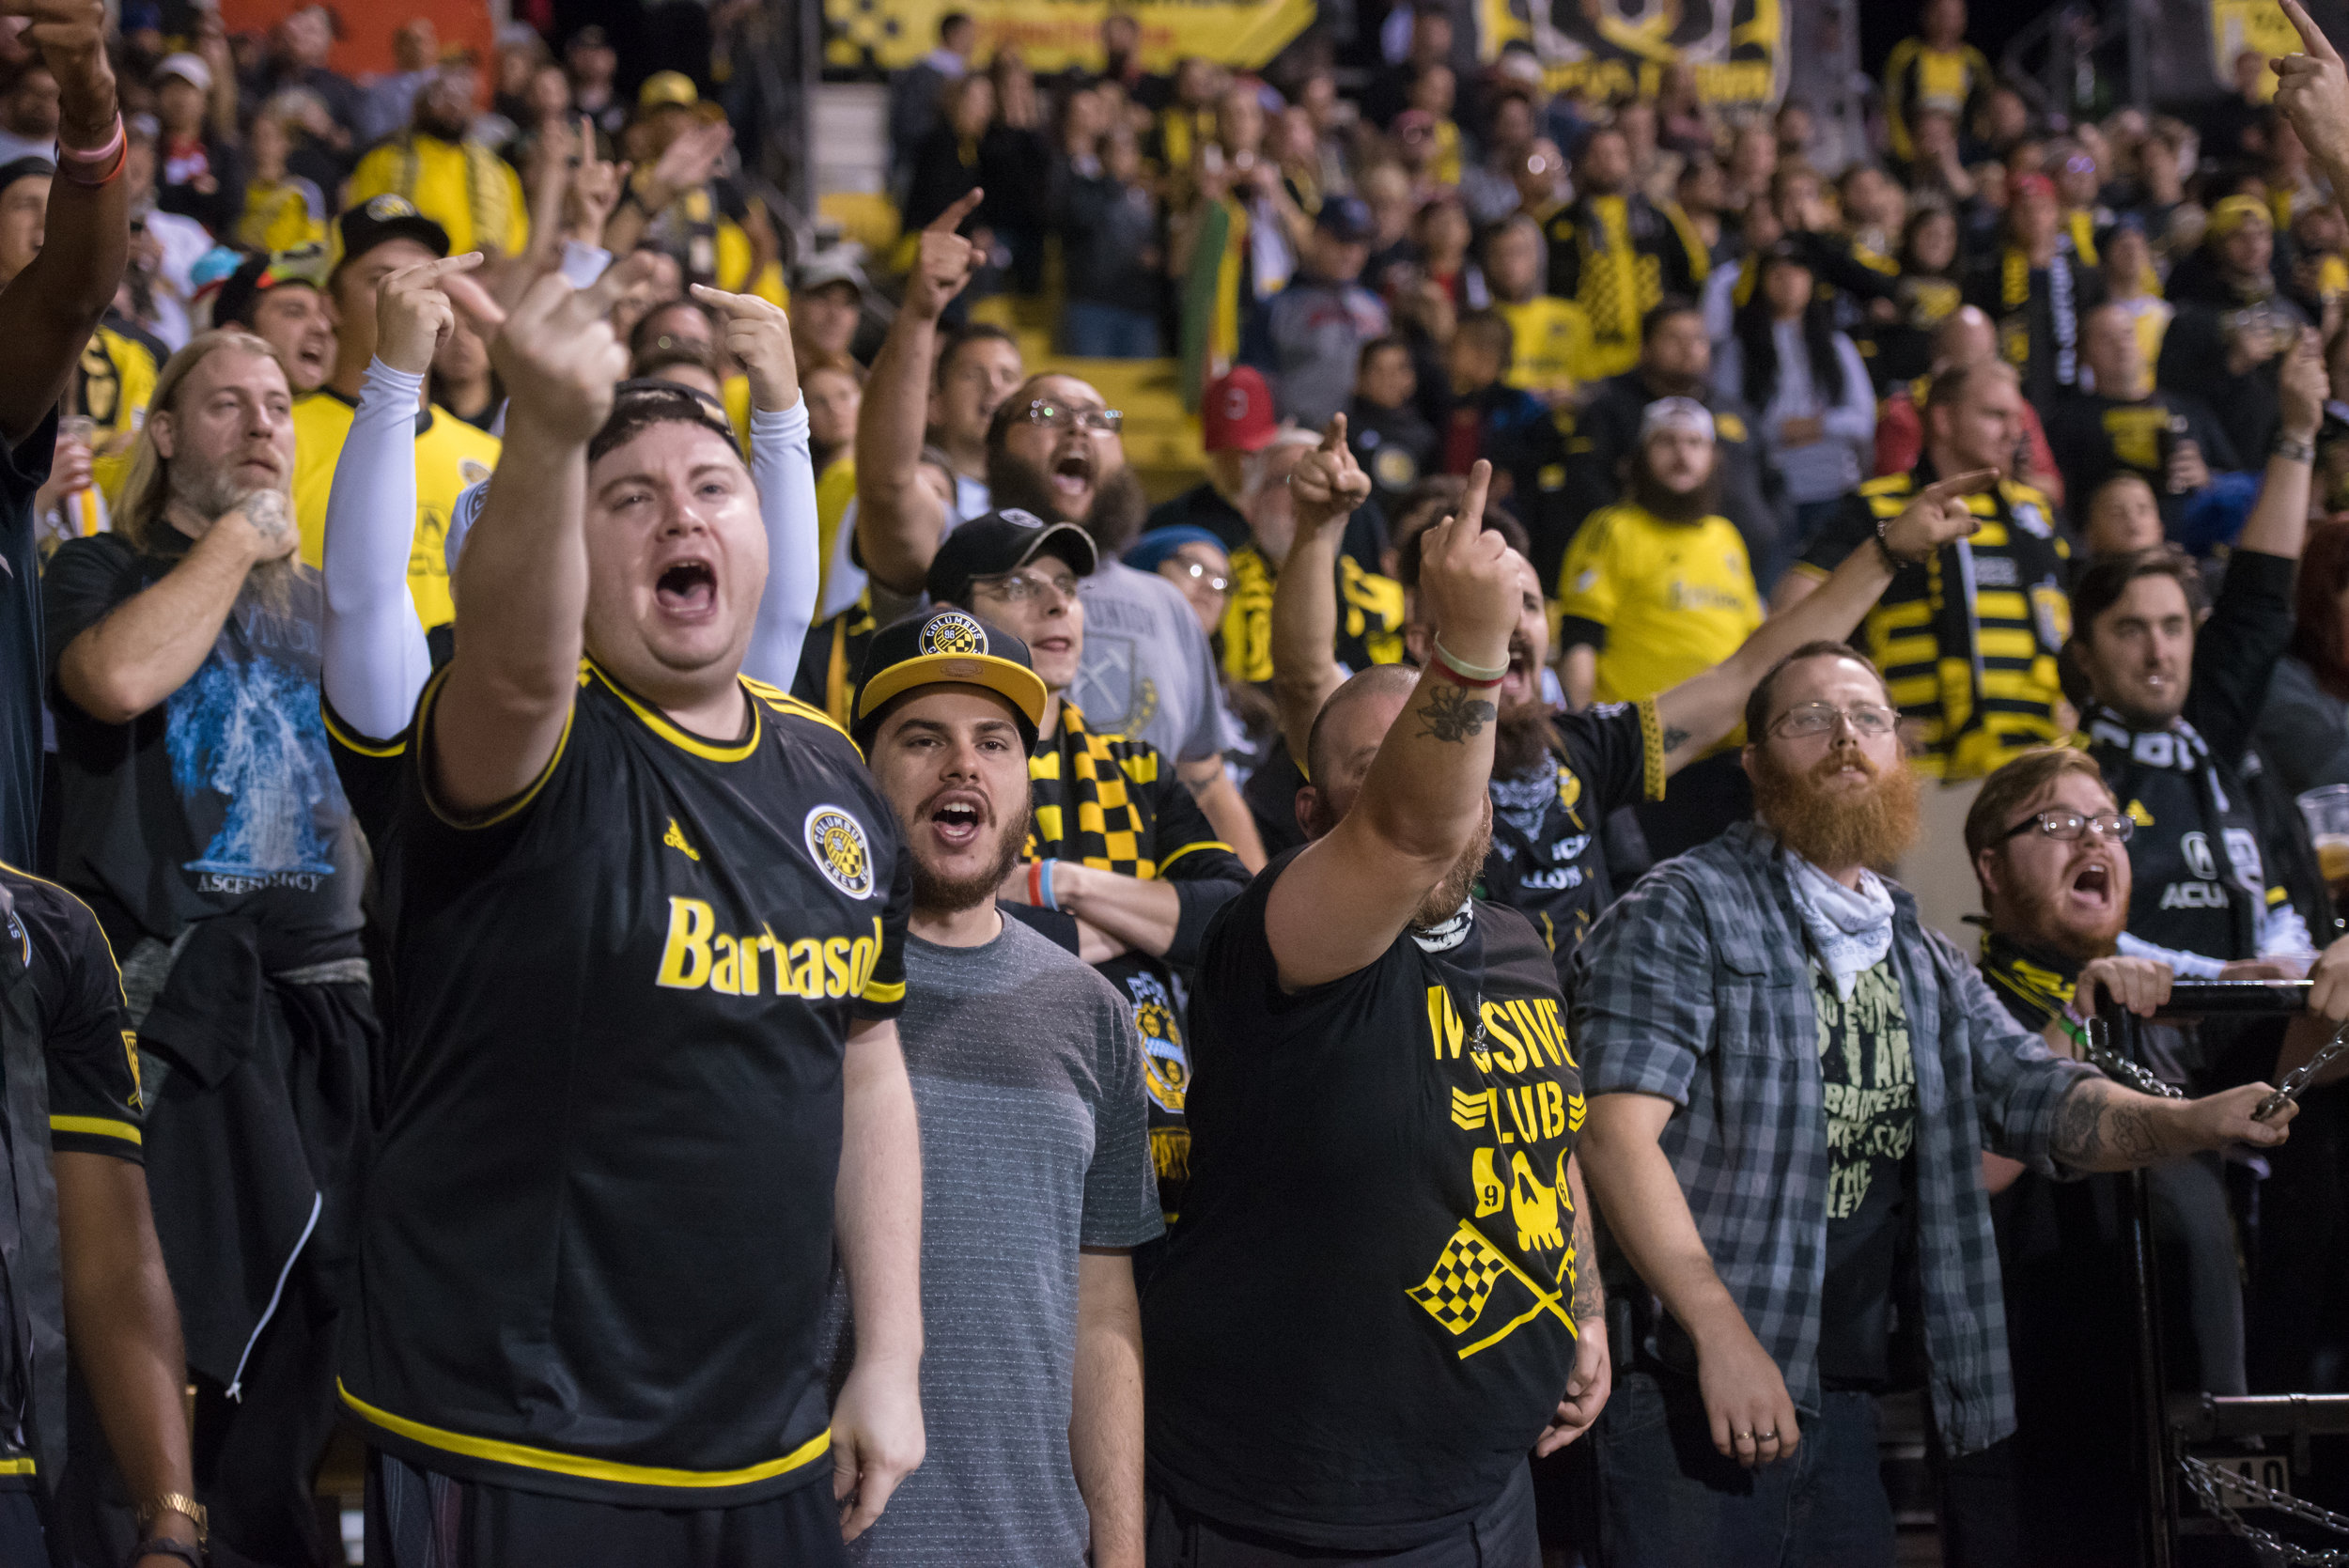 Columbus Crew fans boo and holler at the referees after a call made during the Crew's game against the Colorado Rapids on Sept. 22, 2018.